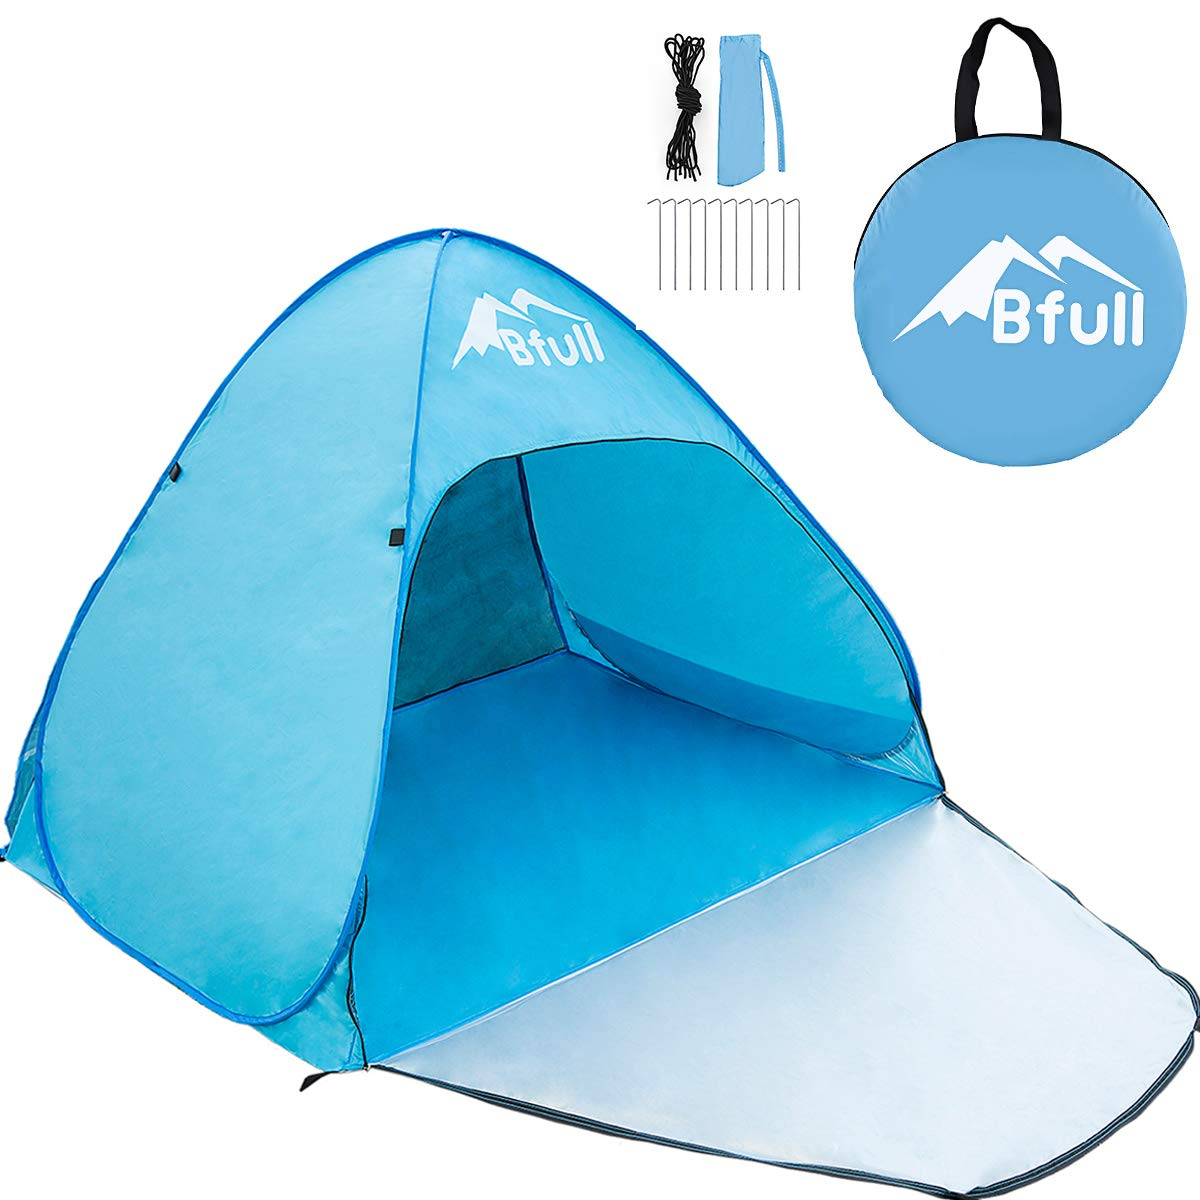 no 6 rated pop up tent